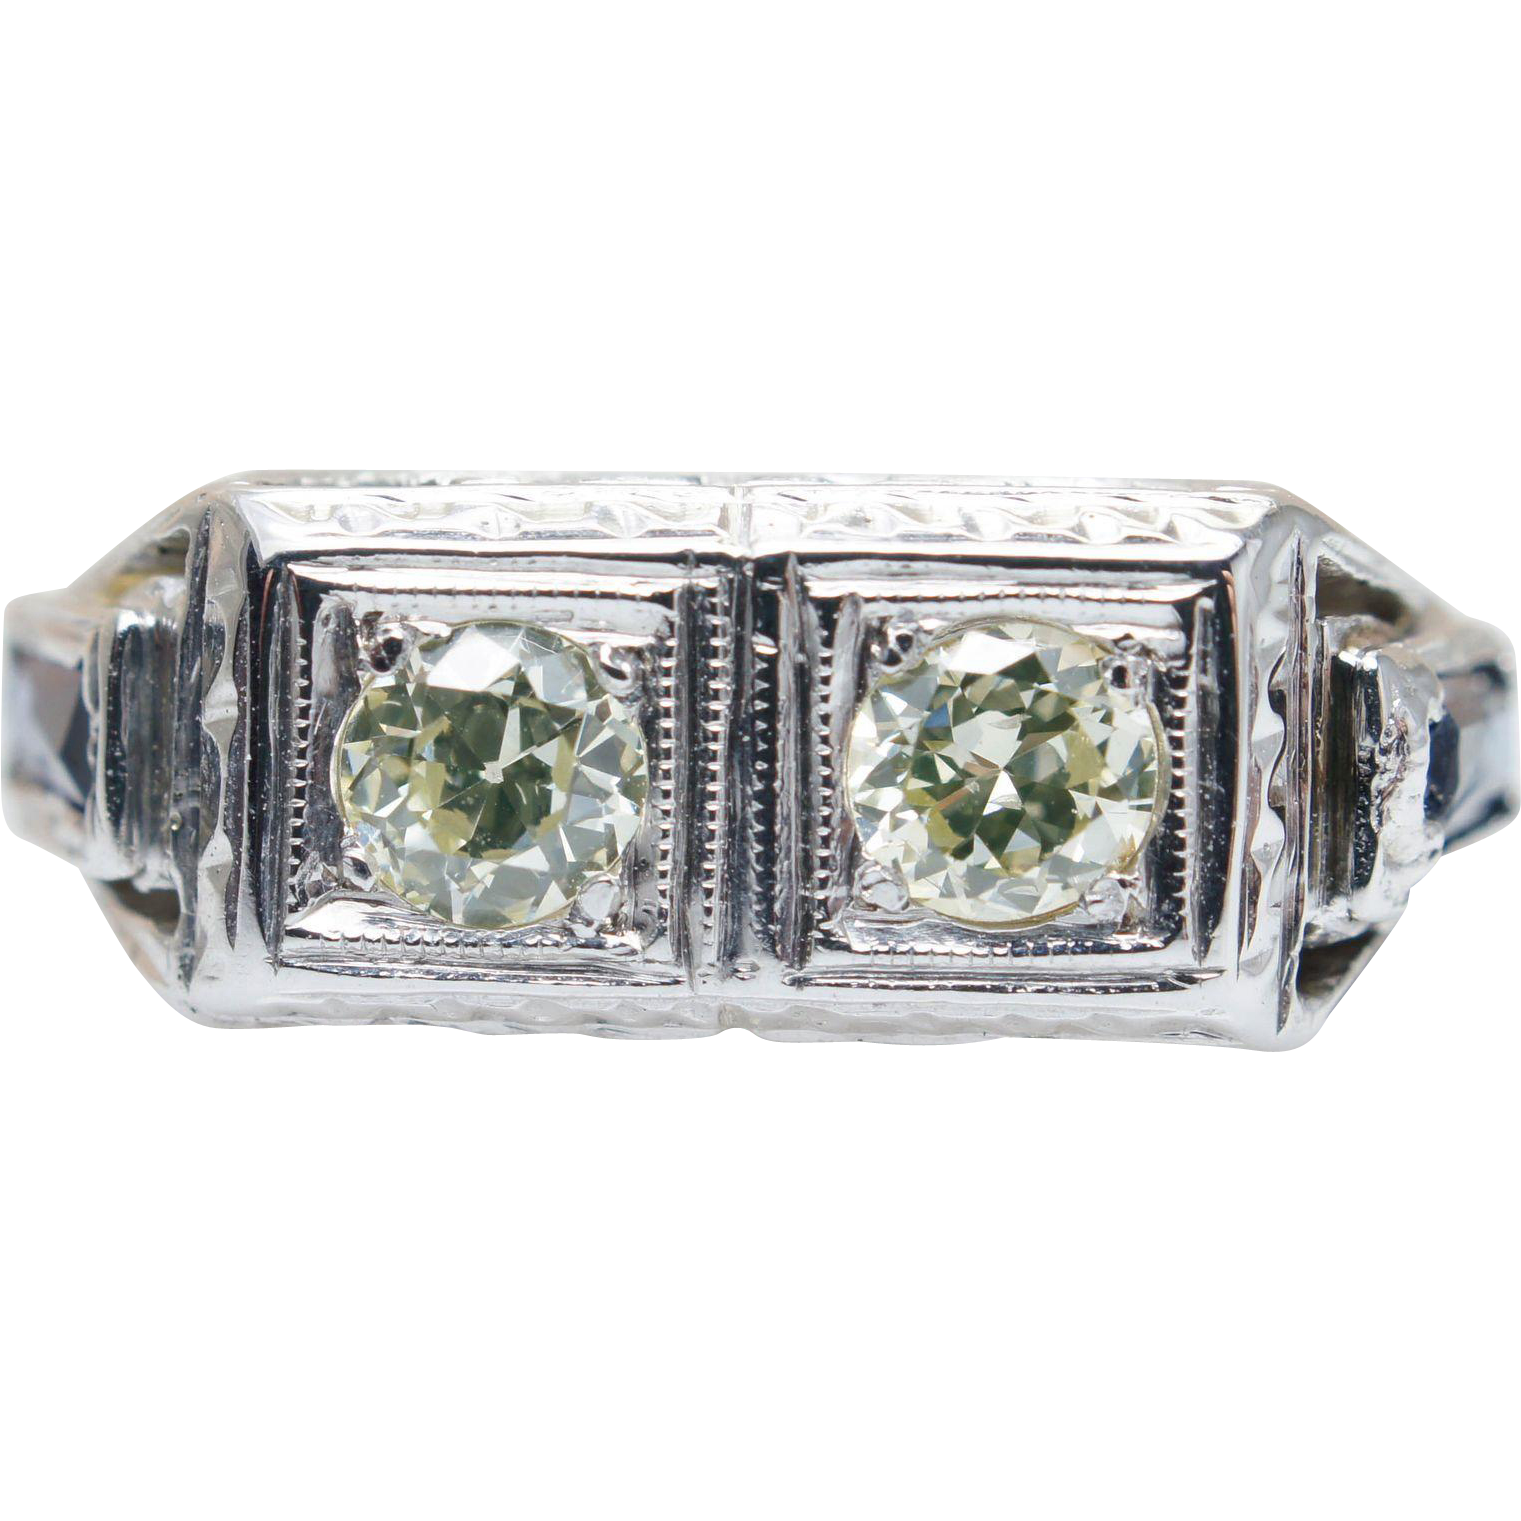 Vintage Art Deco Diamond & Sapphire Accent Ring in 18k White Gold